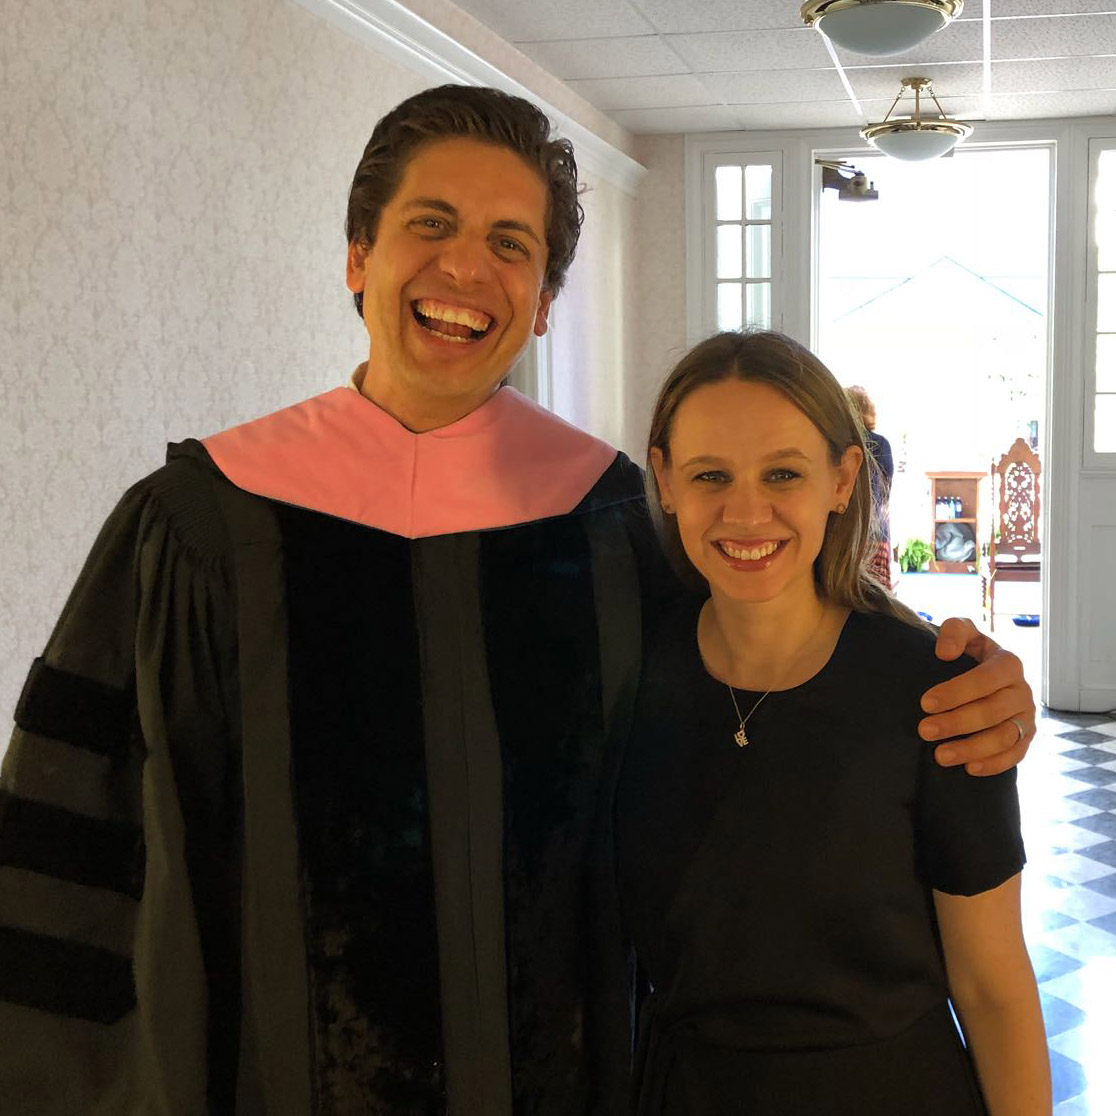 Francisco and Elizabeth Núñez celebrate his being presented with an Honorary Doctor of Music degree from Gettysburg College